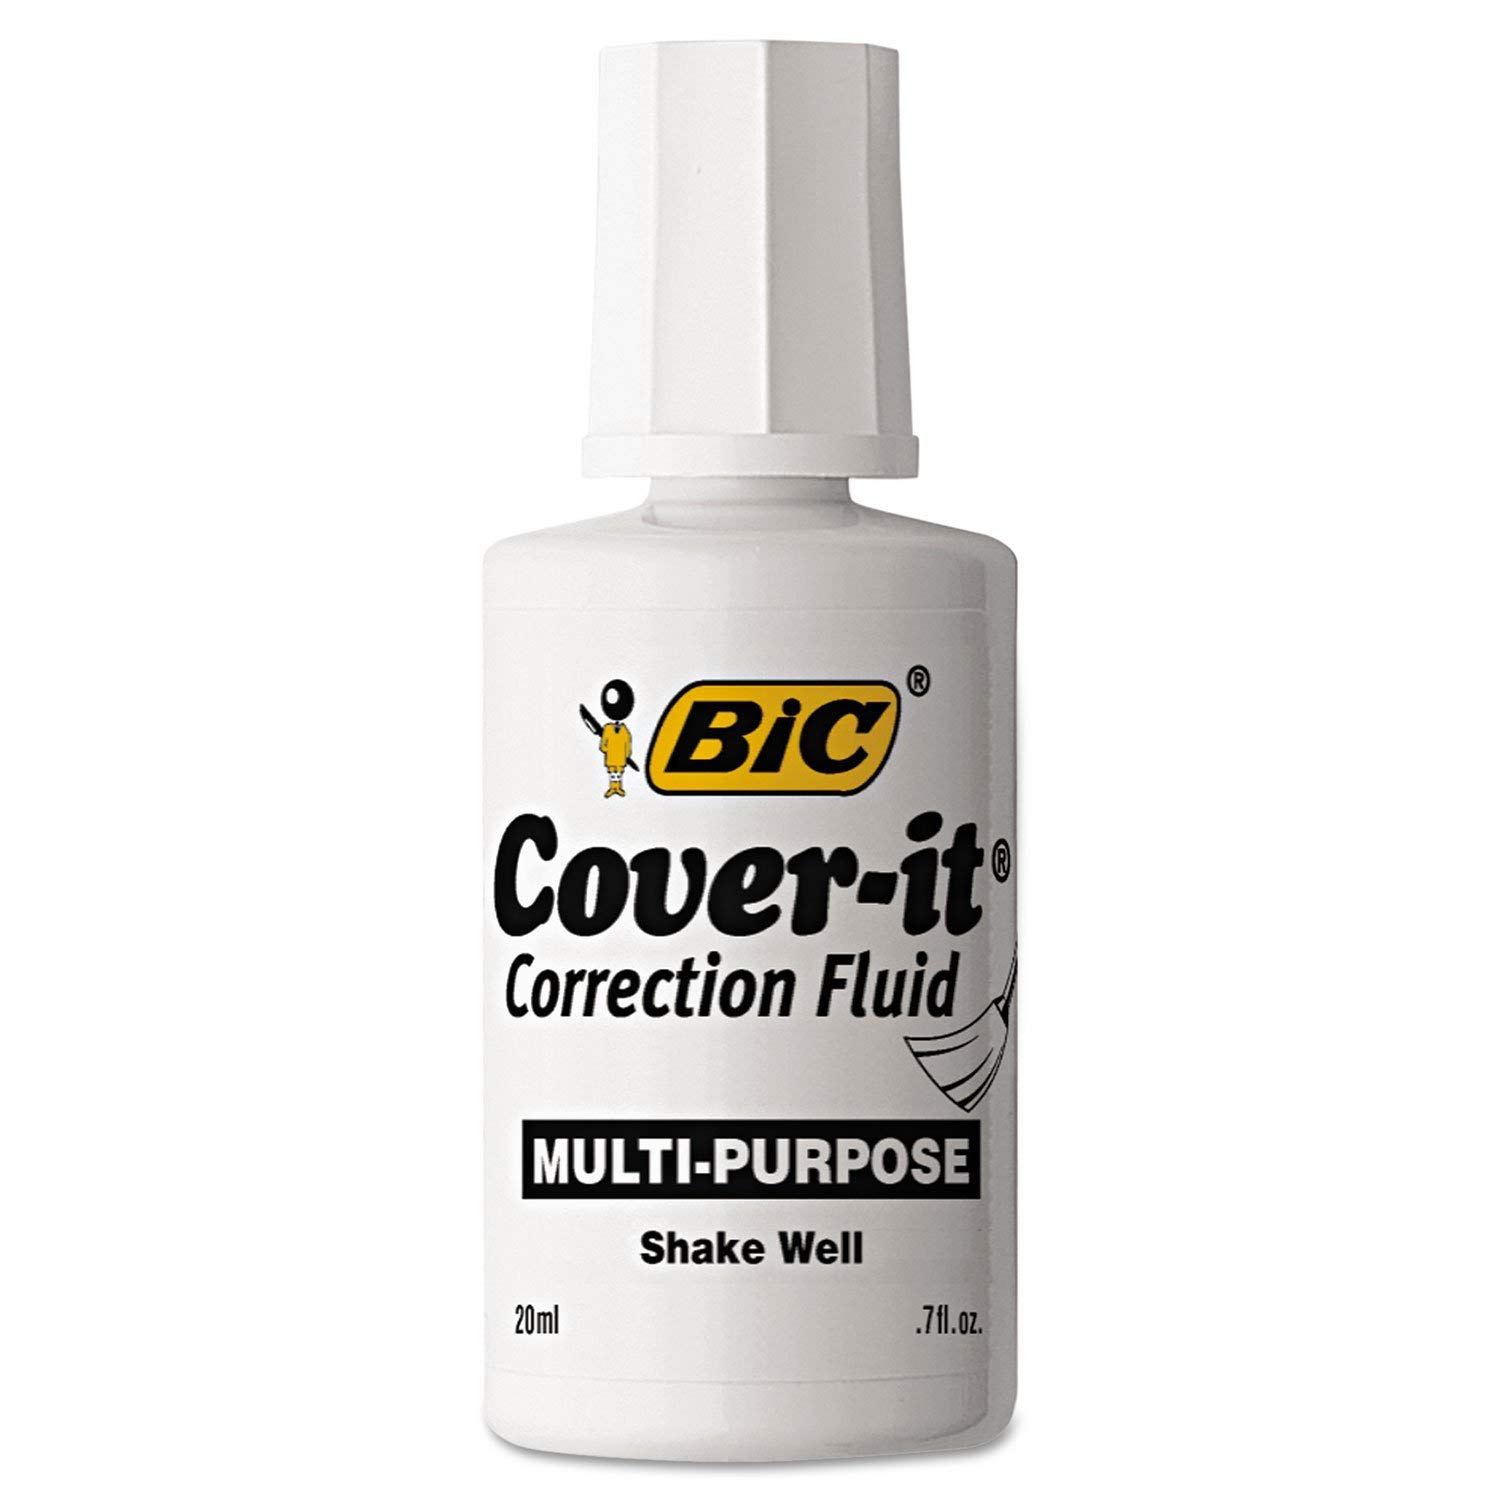 BIC Cover-It Correction Fluid, 20 Milliliter Bottle, White, 1/Each (WOC12-WE), 72 pack by BIC